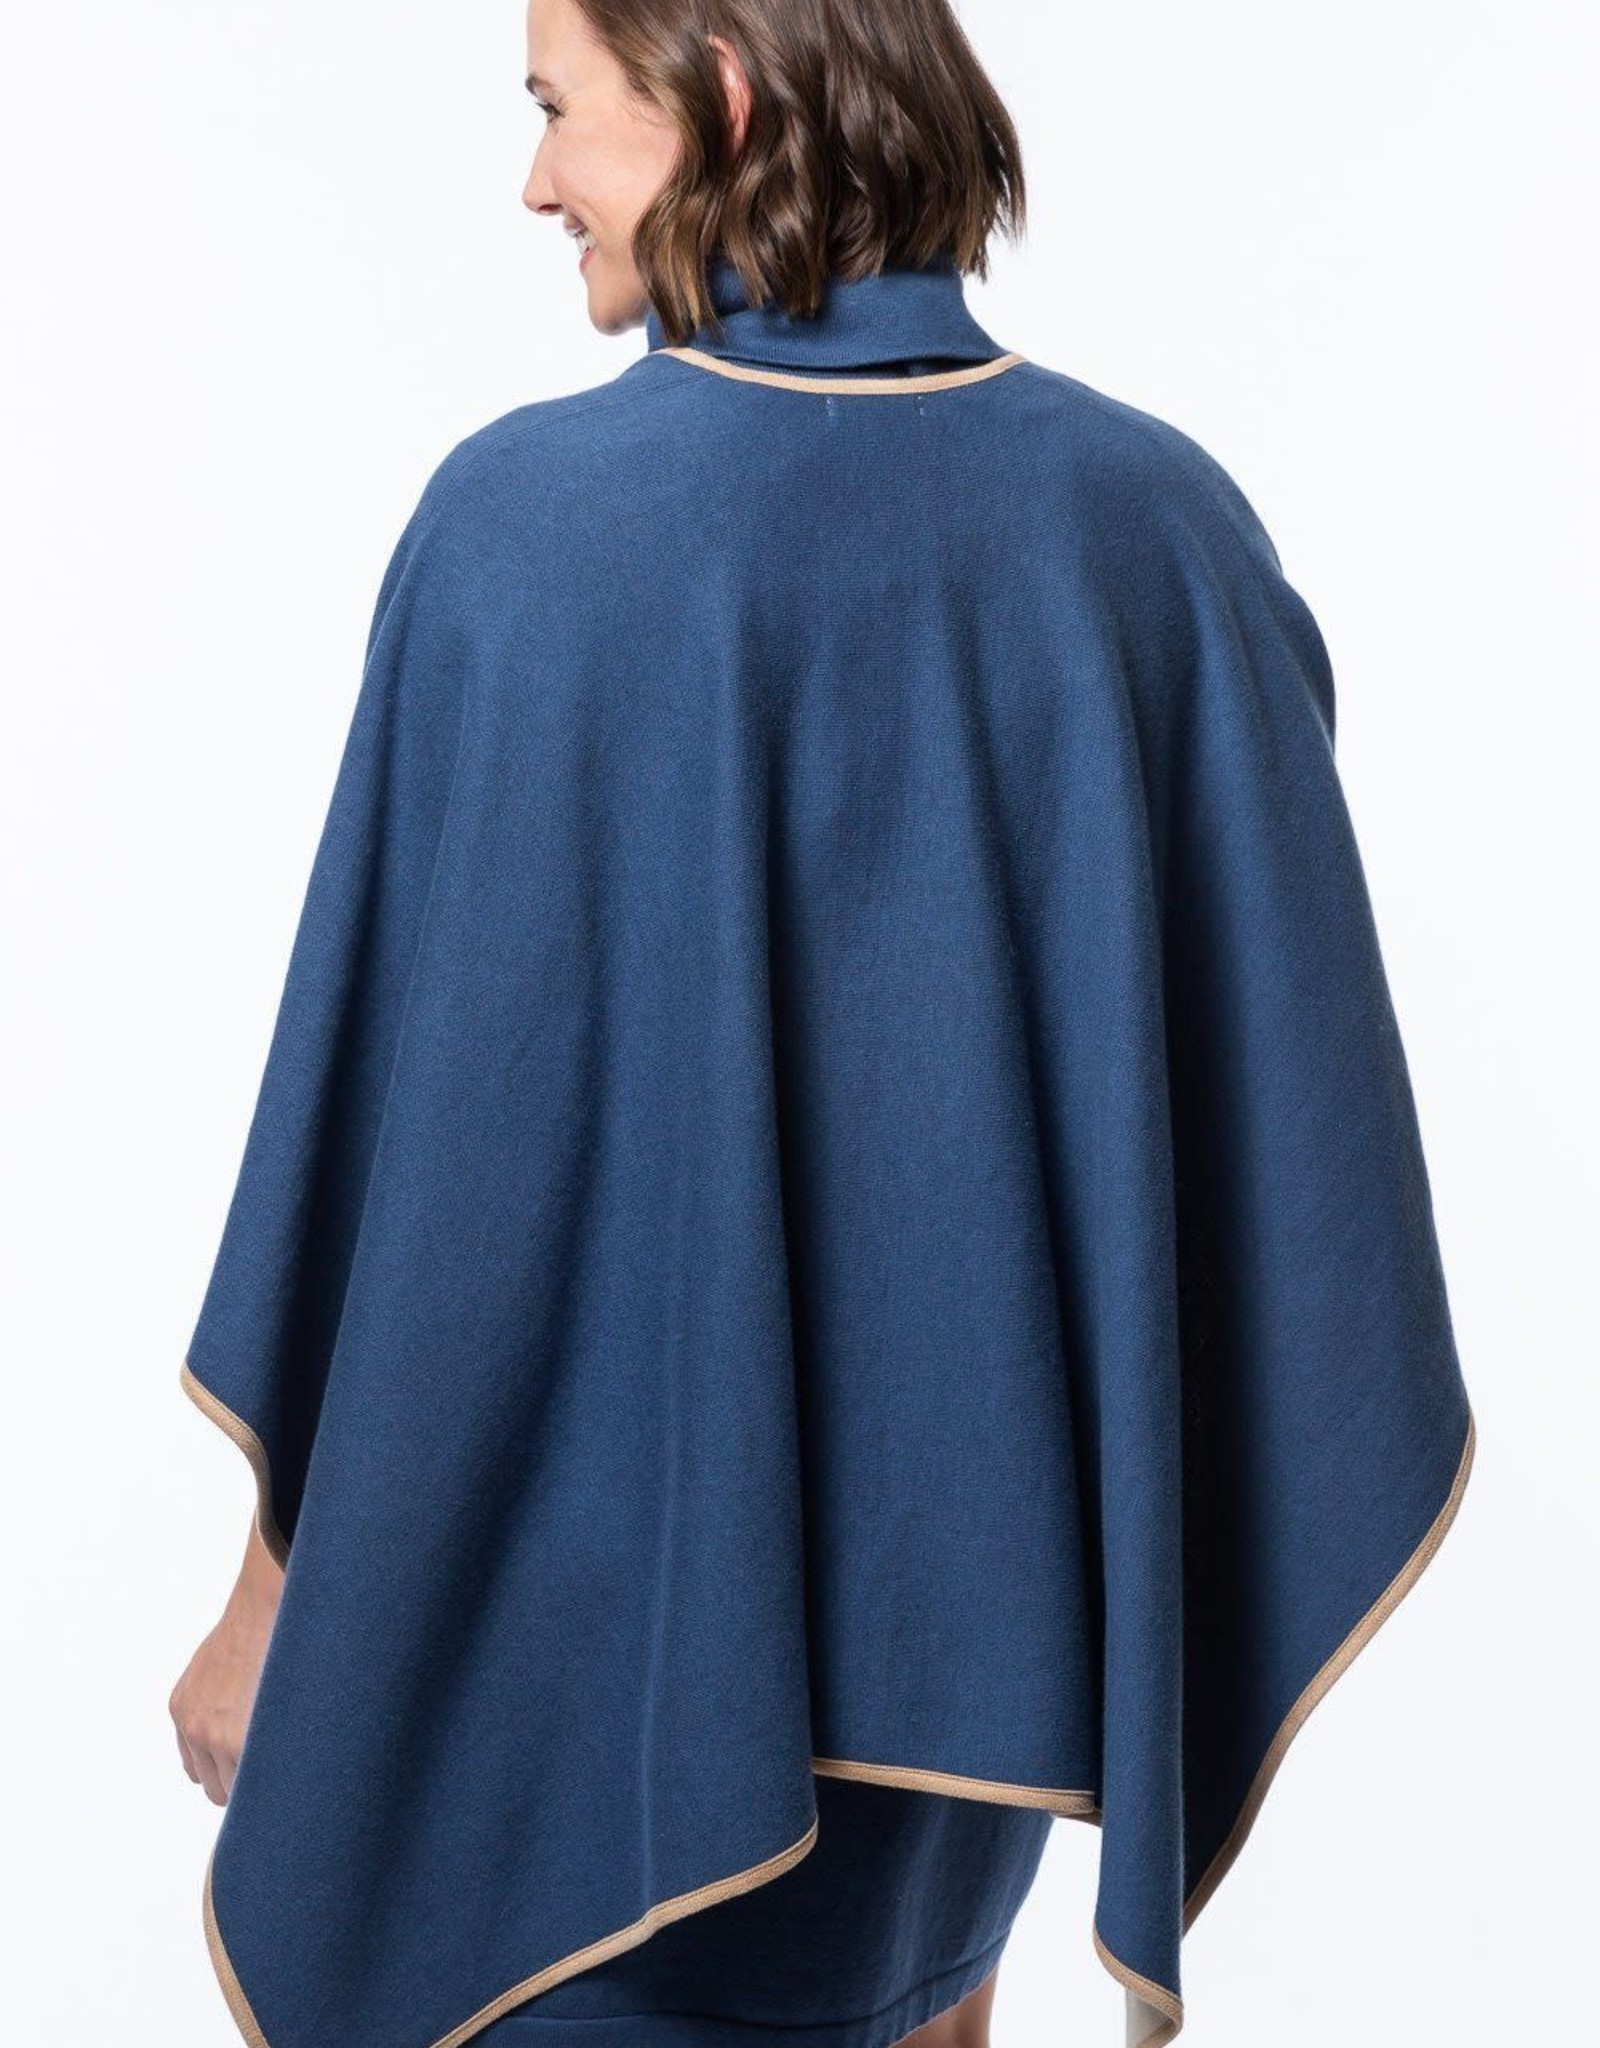 tyler boe Reversible Cape